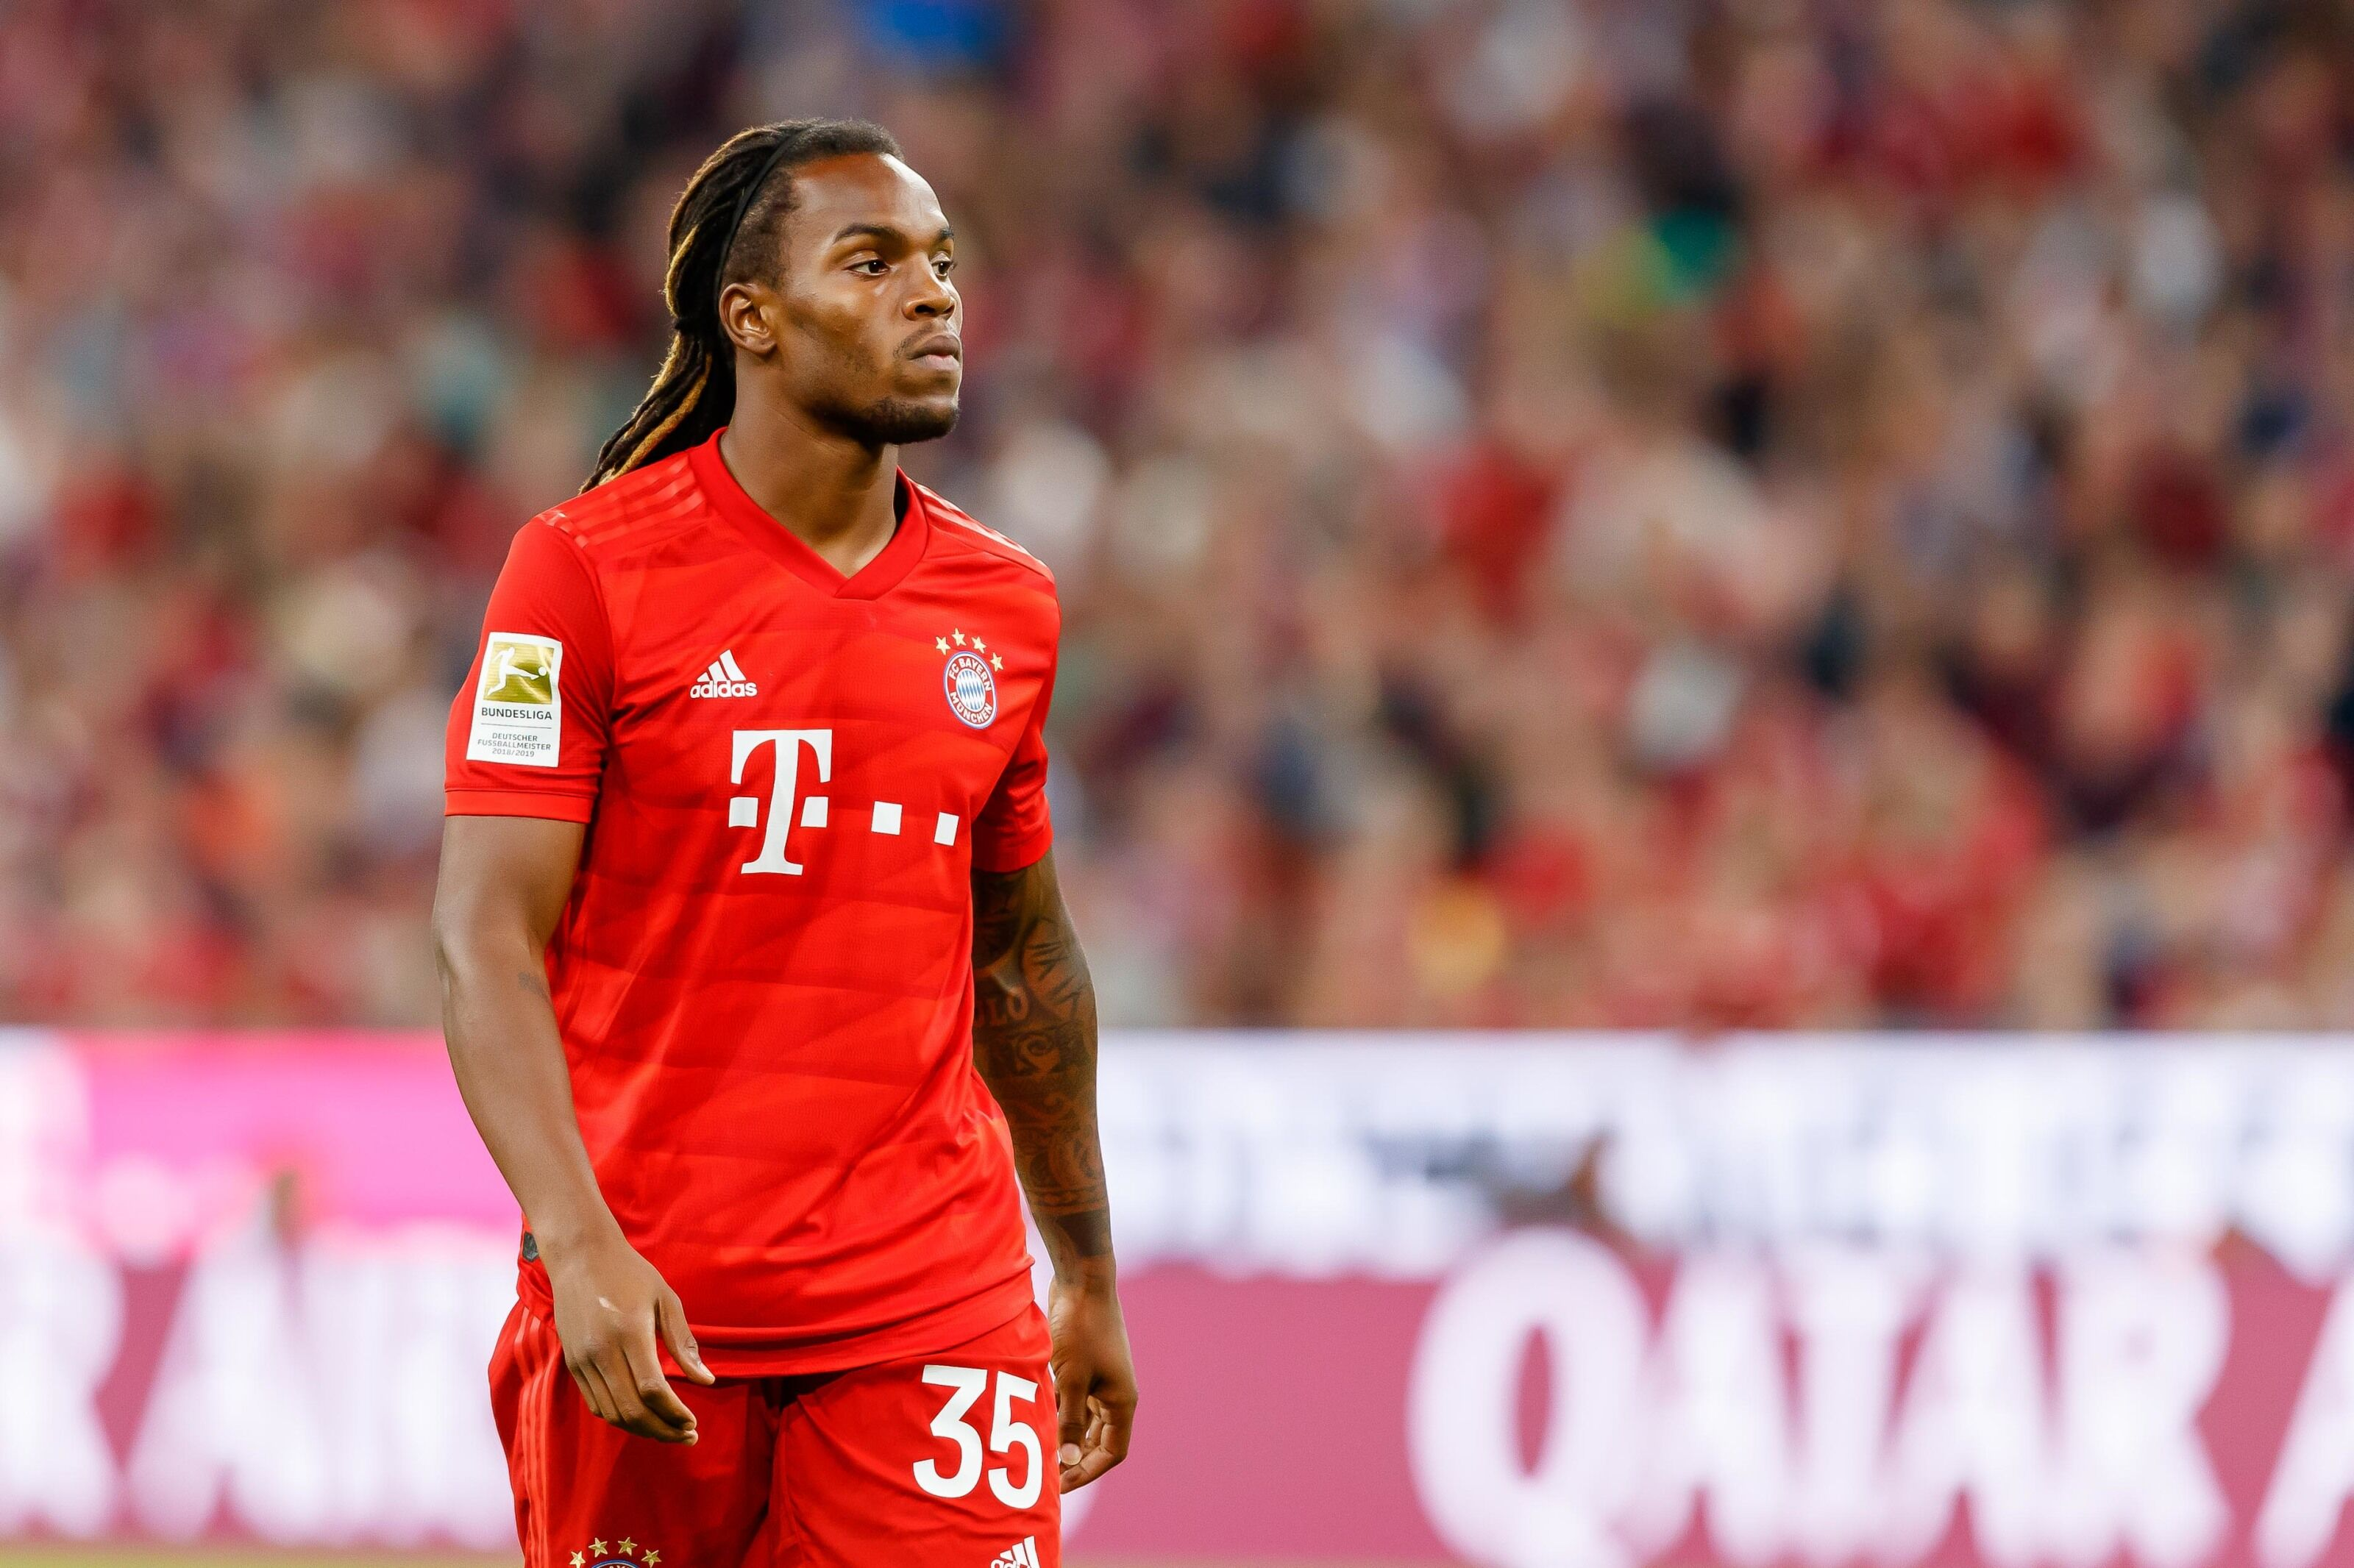 Renato Sanches leaves Bayern Munich to join Lille